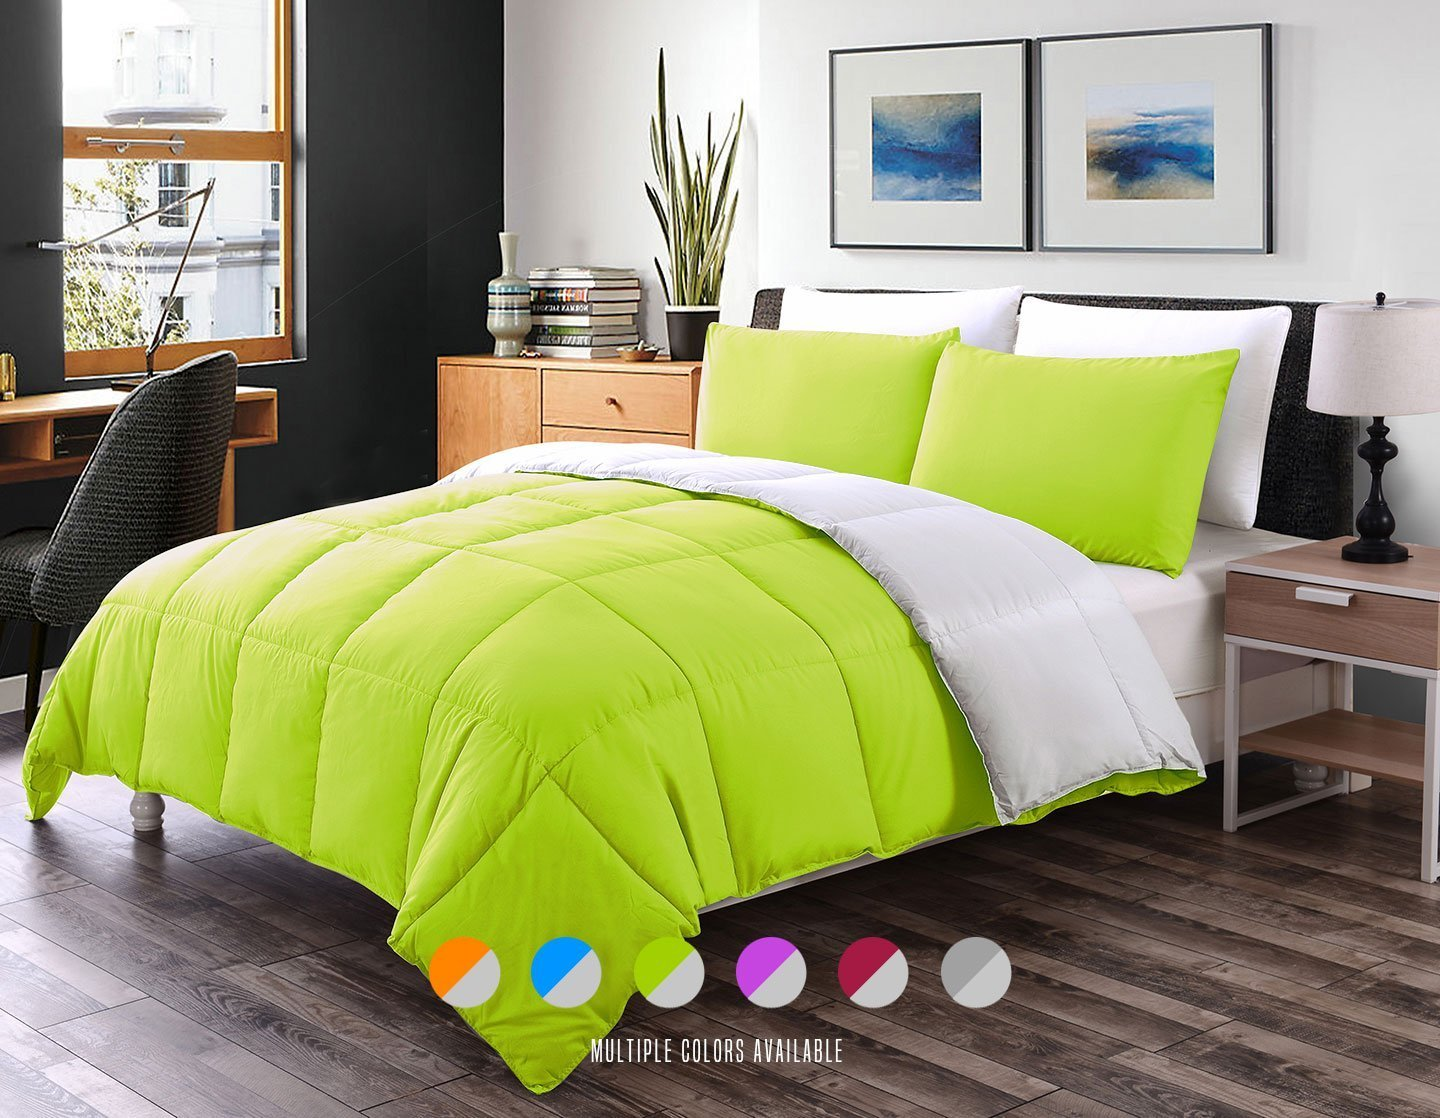 Luxe Bedding 3-PCS Reversible Down Alternative Quilted Duvet / Comforter Set LIme/Gray